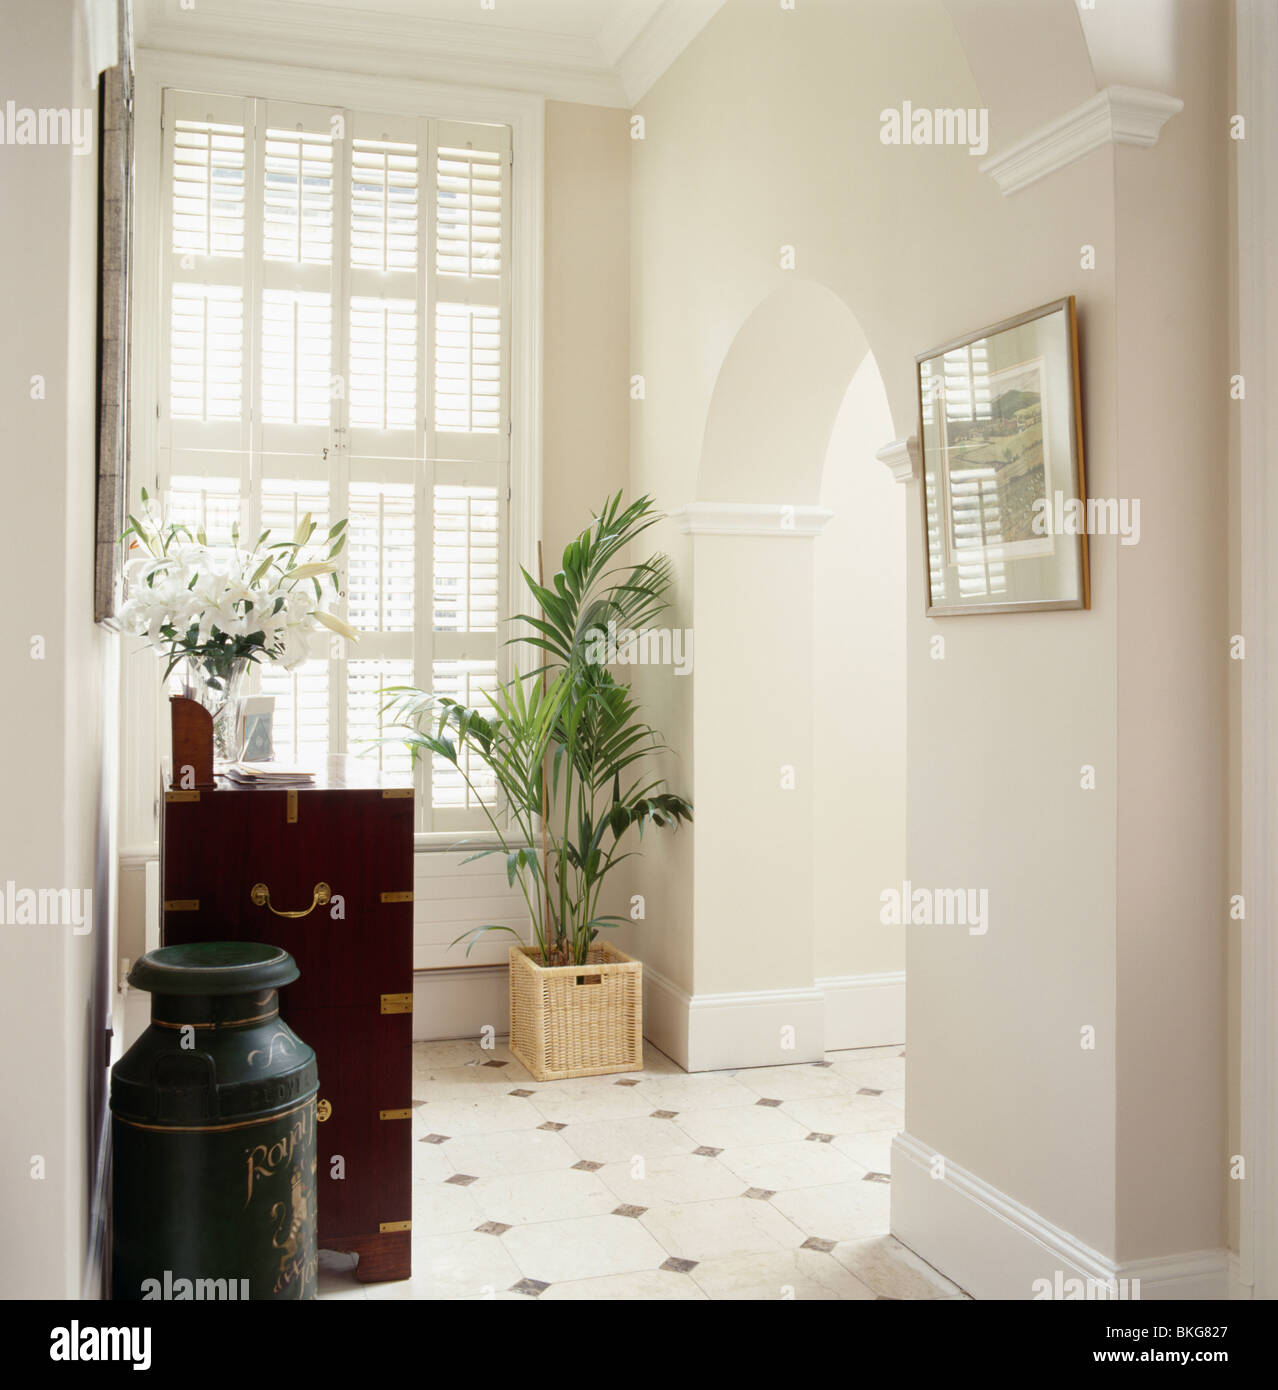 Plantation Shutters On Tall Window In Modern White Hall With